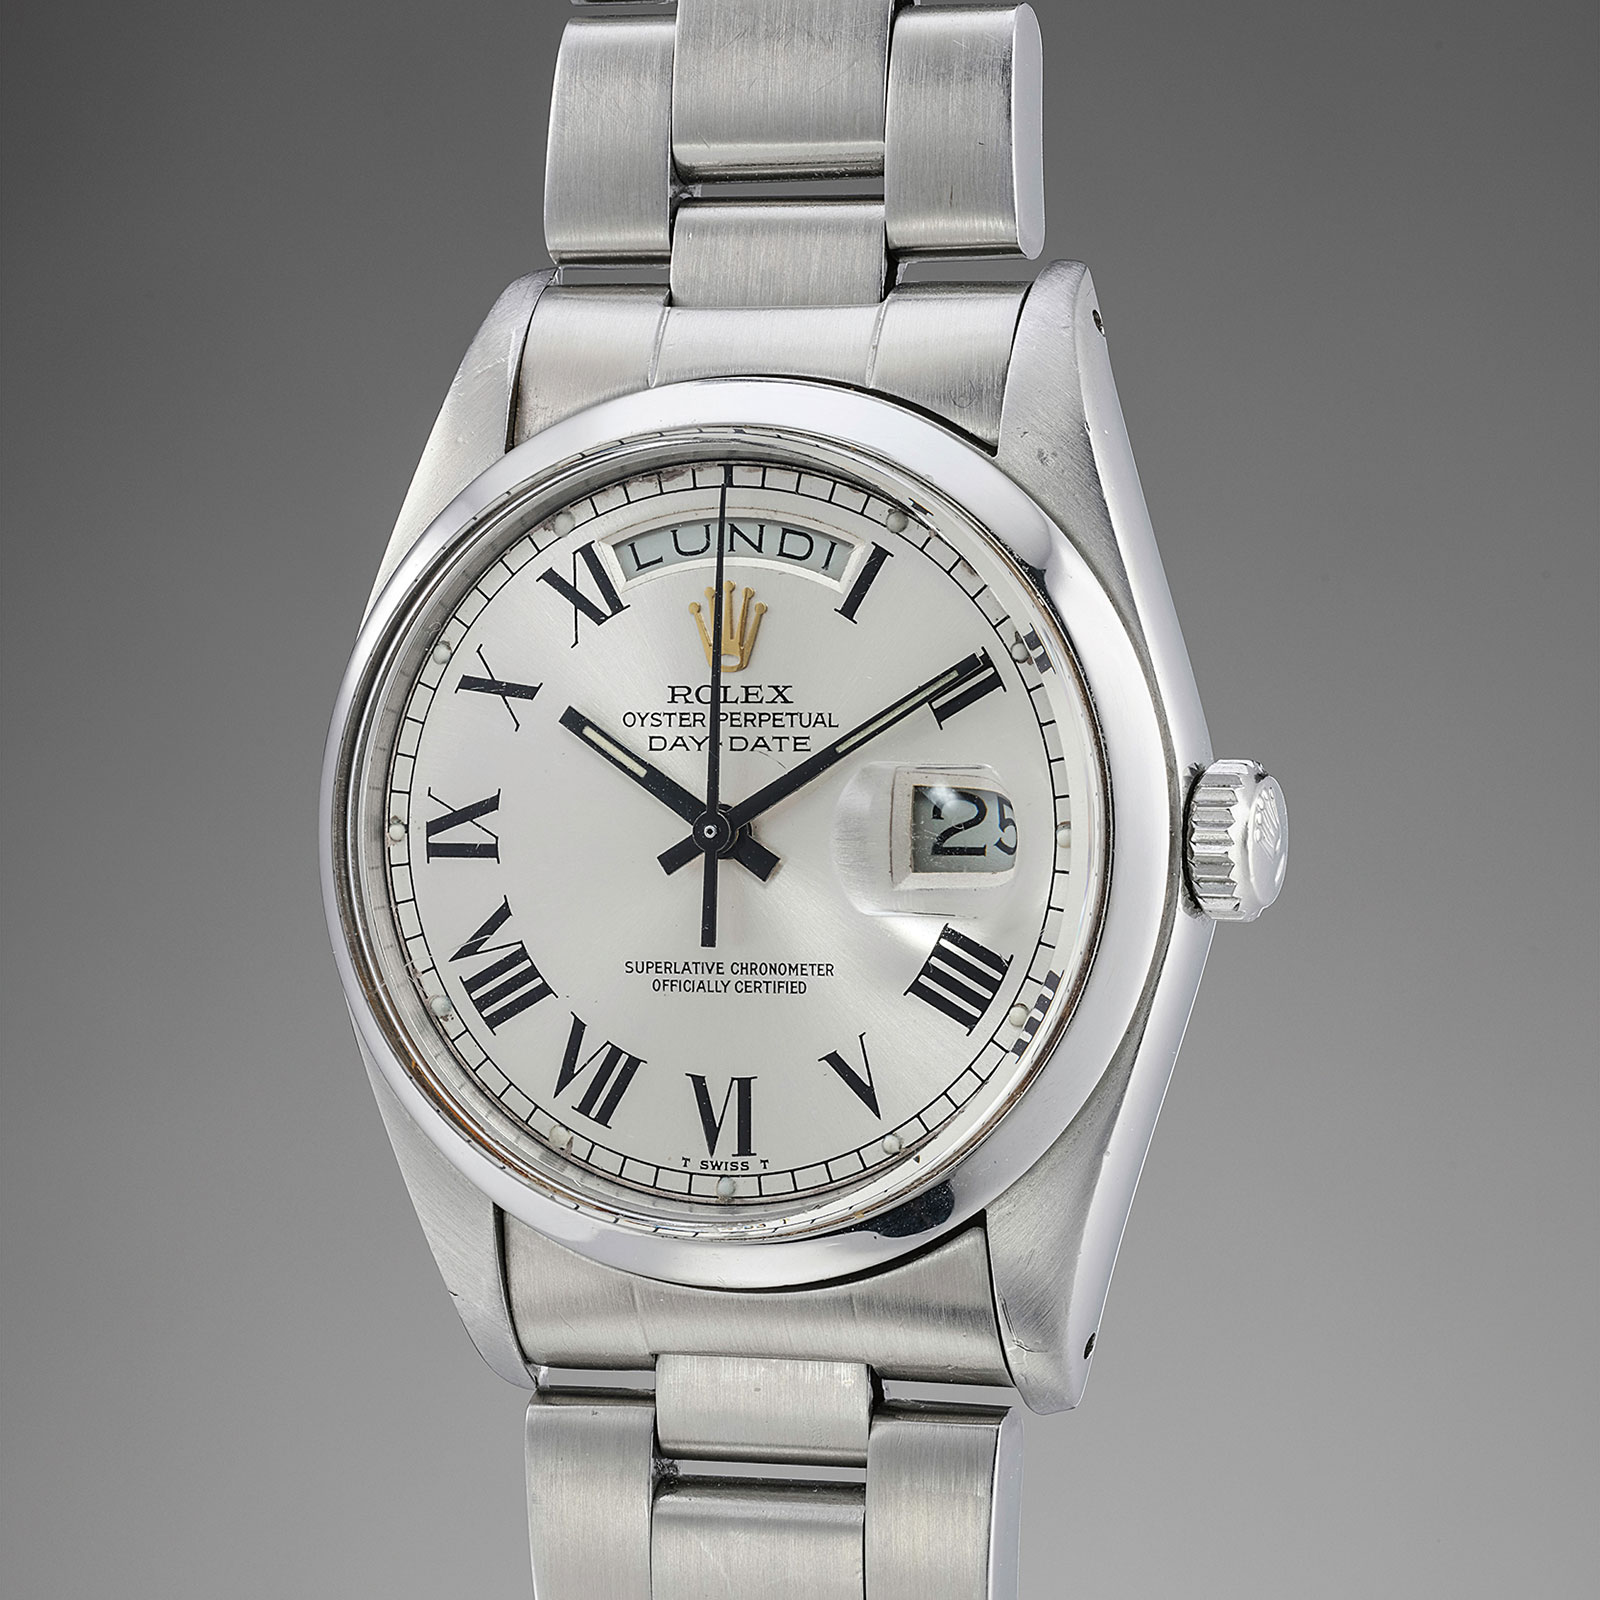 Rolex Day Date stainless steel phillips 1